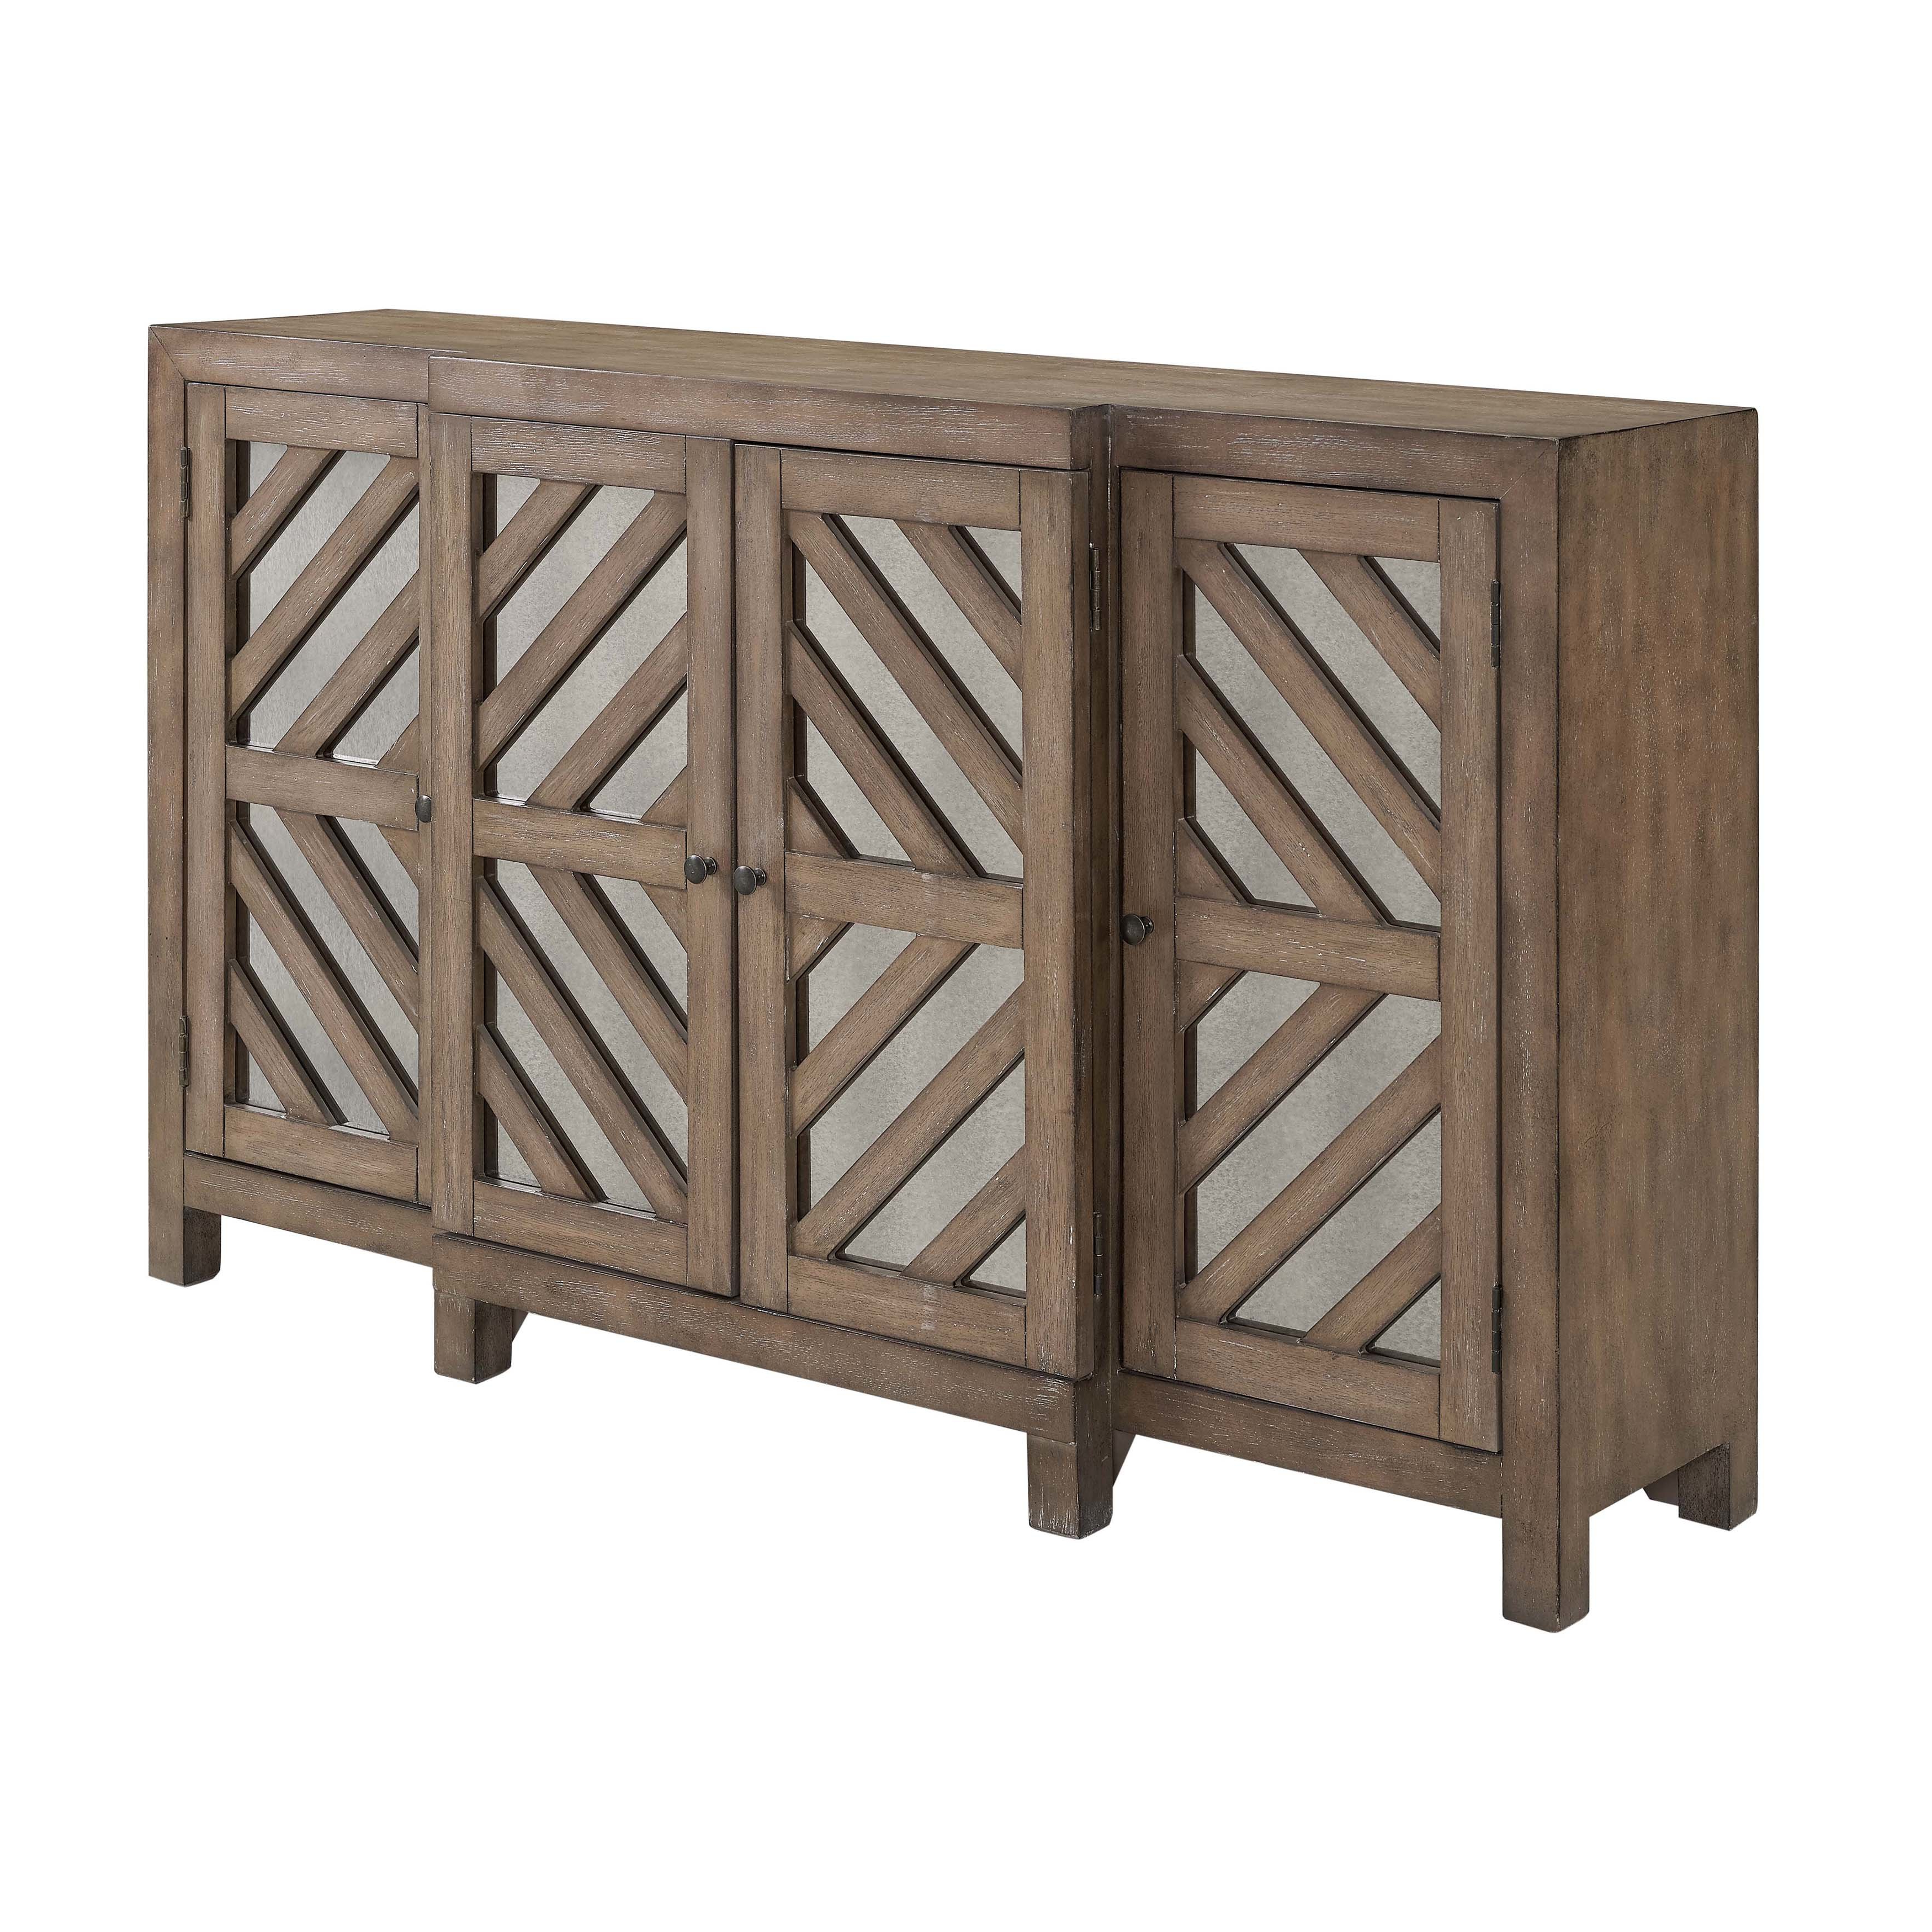 Farmhouse & Rustic Sideboards & Buffets | Birch Lane Within Rustic Black 2 Drawer Buffets (View 10 of 20)